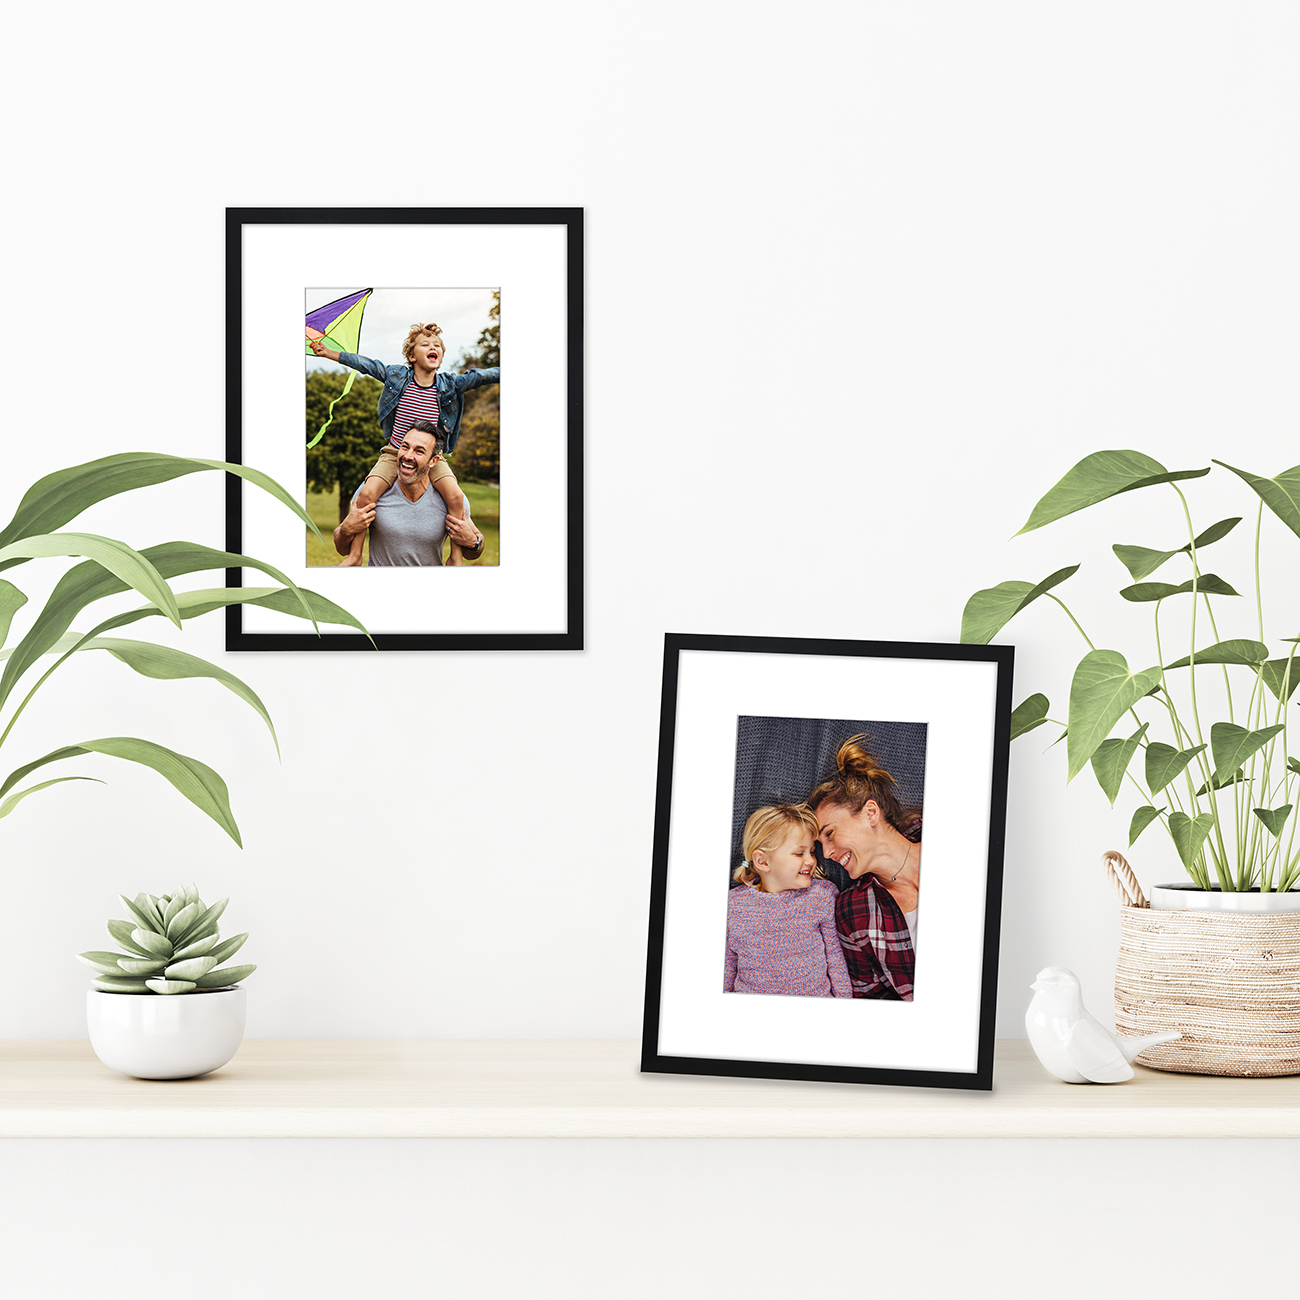 miniature 12 - Americanflat Thin Picture Frame 5x7 8x10 11x14 8.5x11 Wall Tabletop Pick Color